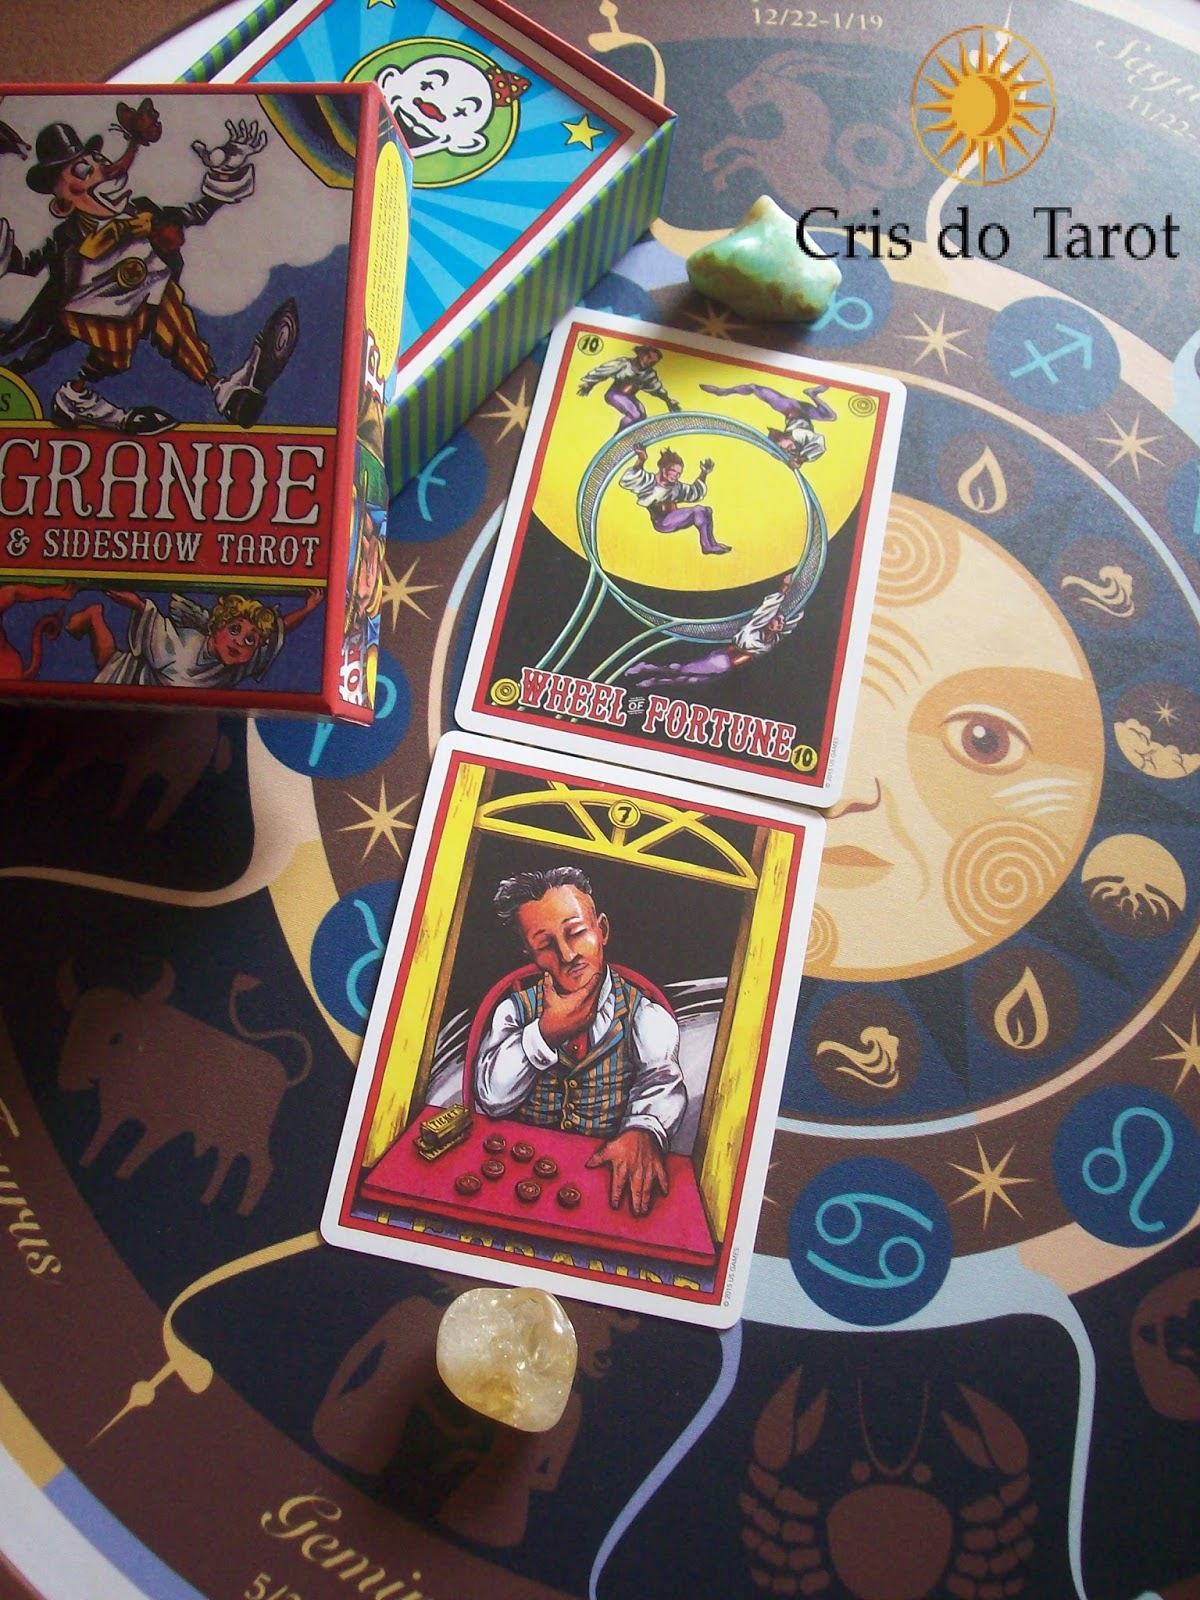 CRIS DO TAROT: Recompensa